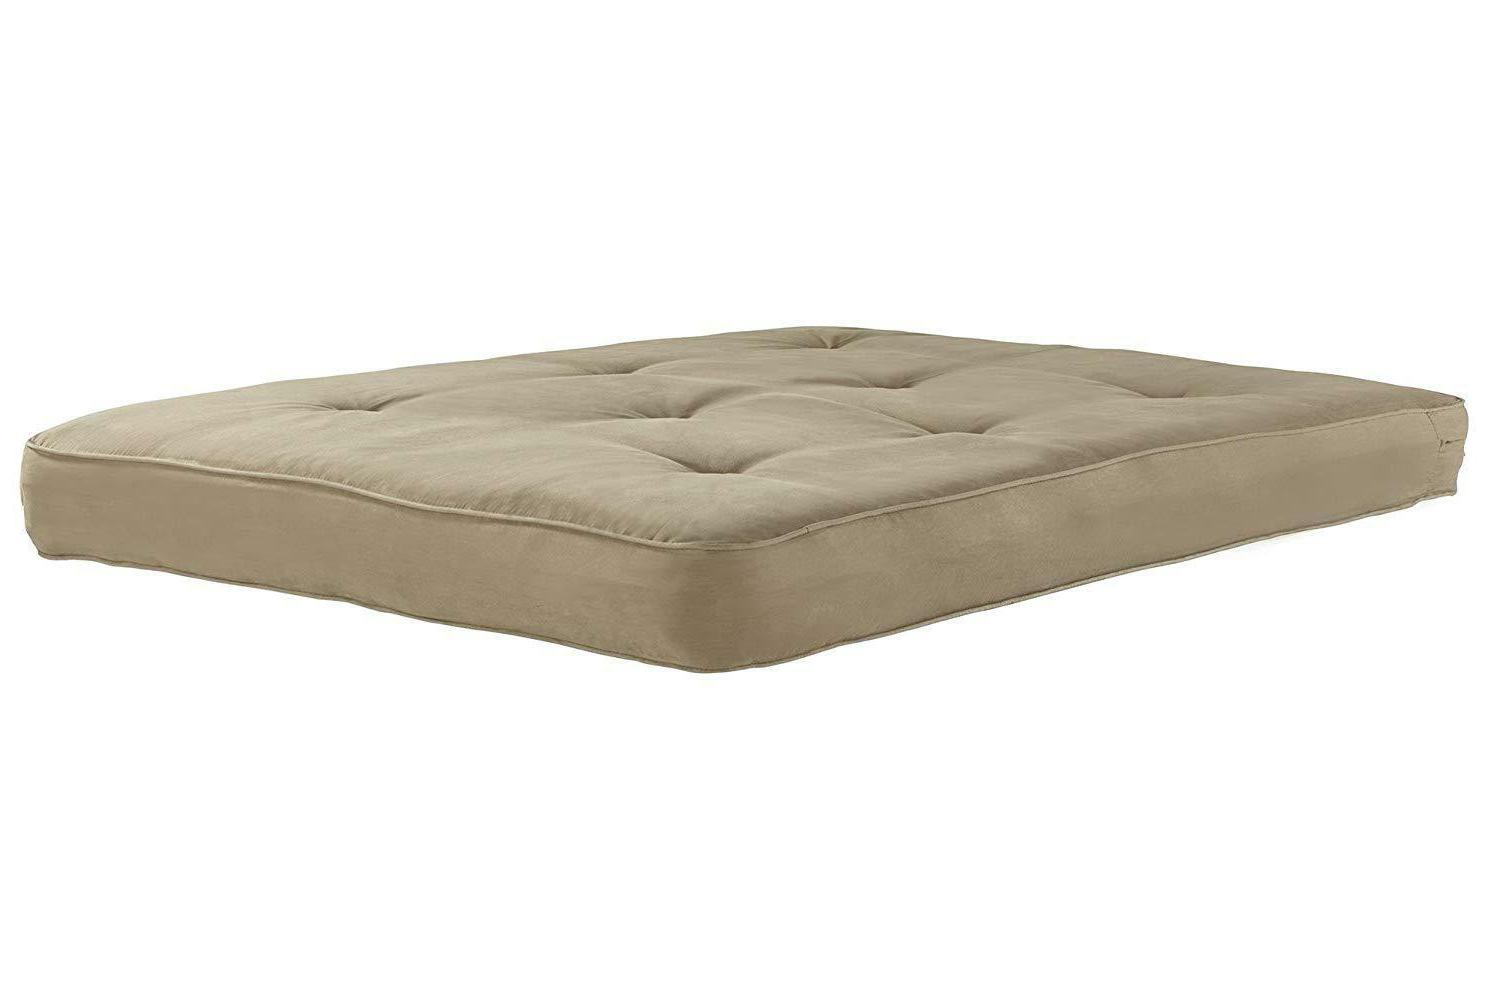 Bed Futon Couch Layering Cover